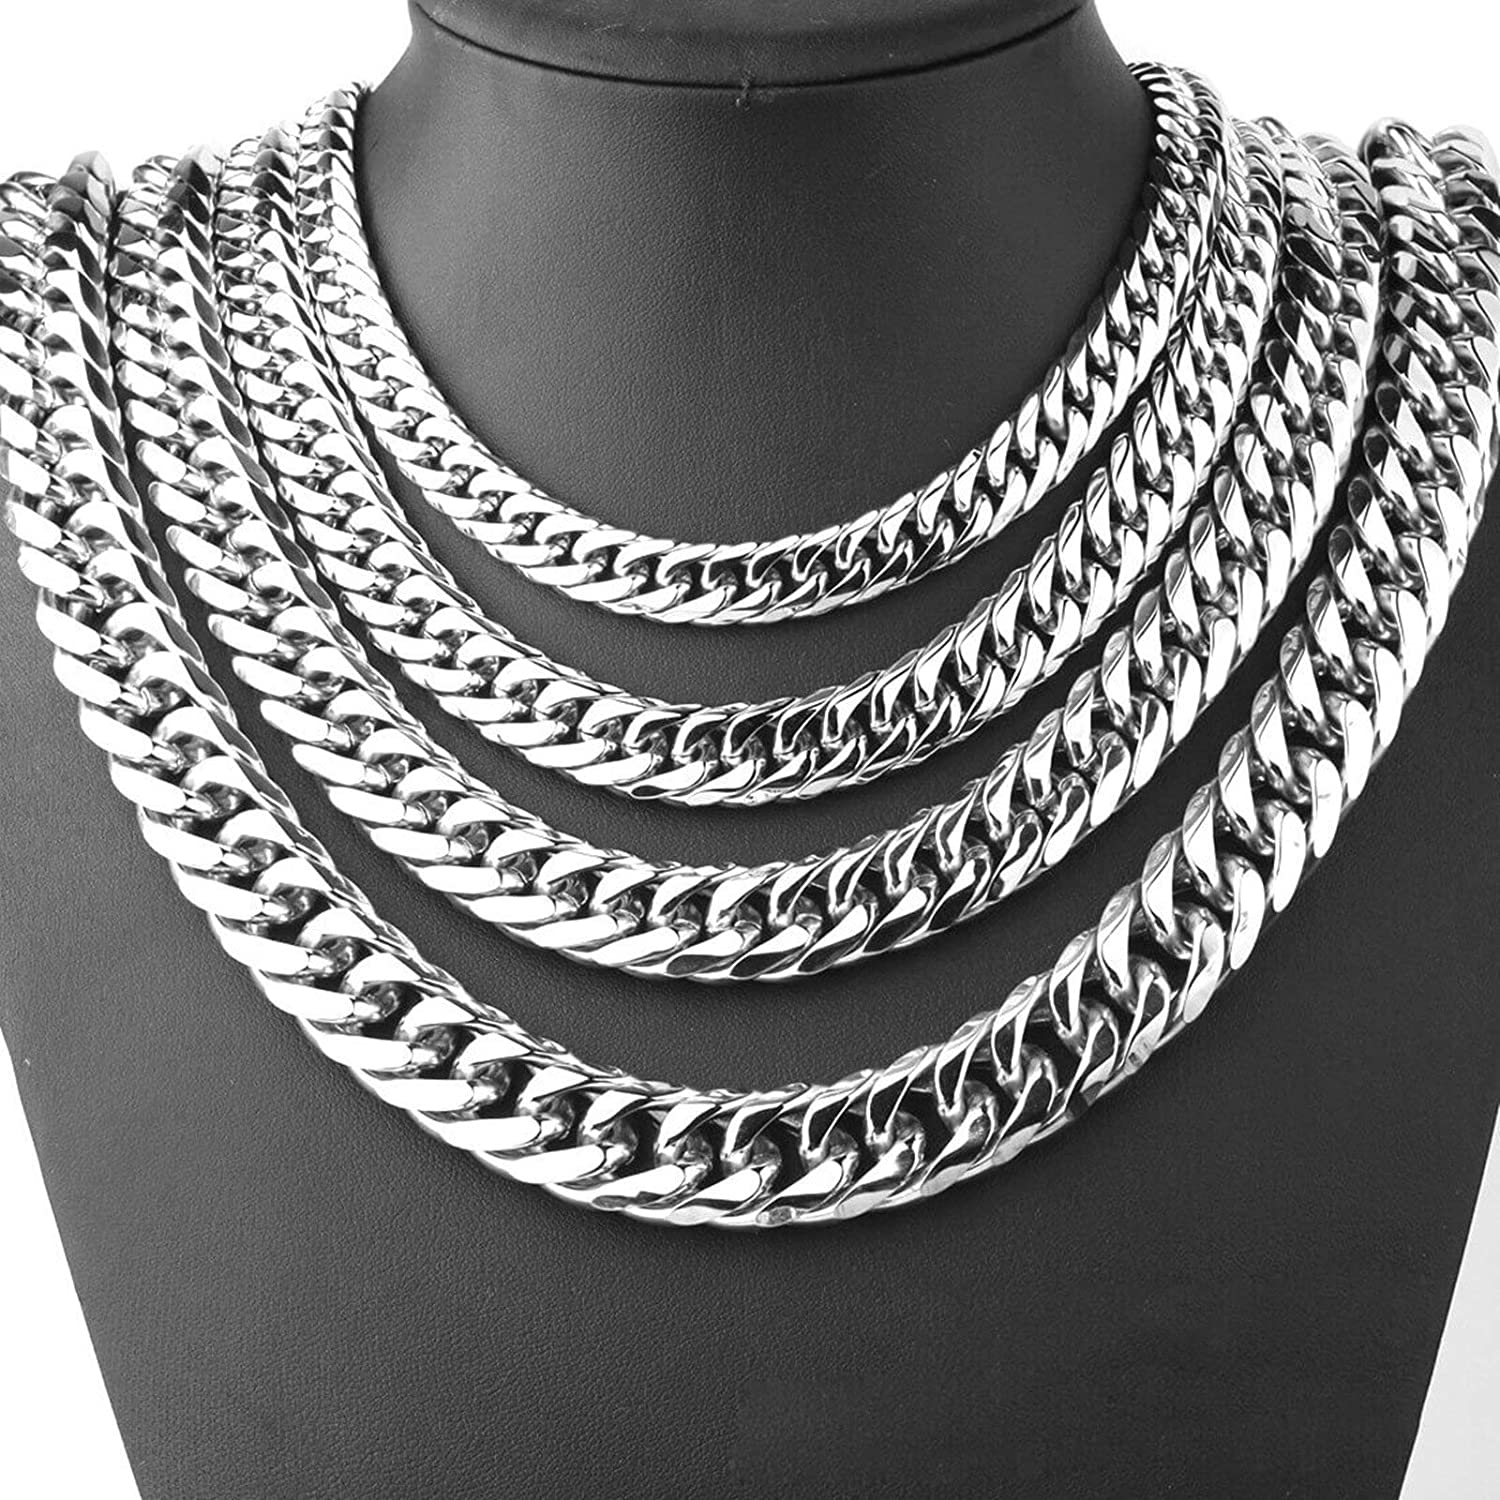 MoAndy Mens Chain Necklaces Stainless Steel Lobster-Claw 11-21Mm Curb Chain 24 Inch Silver